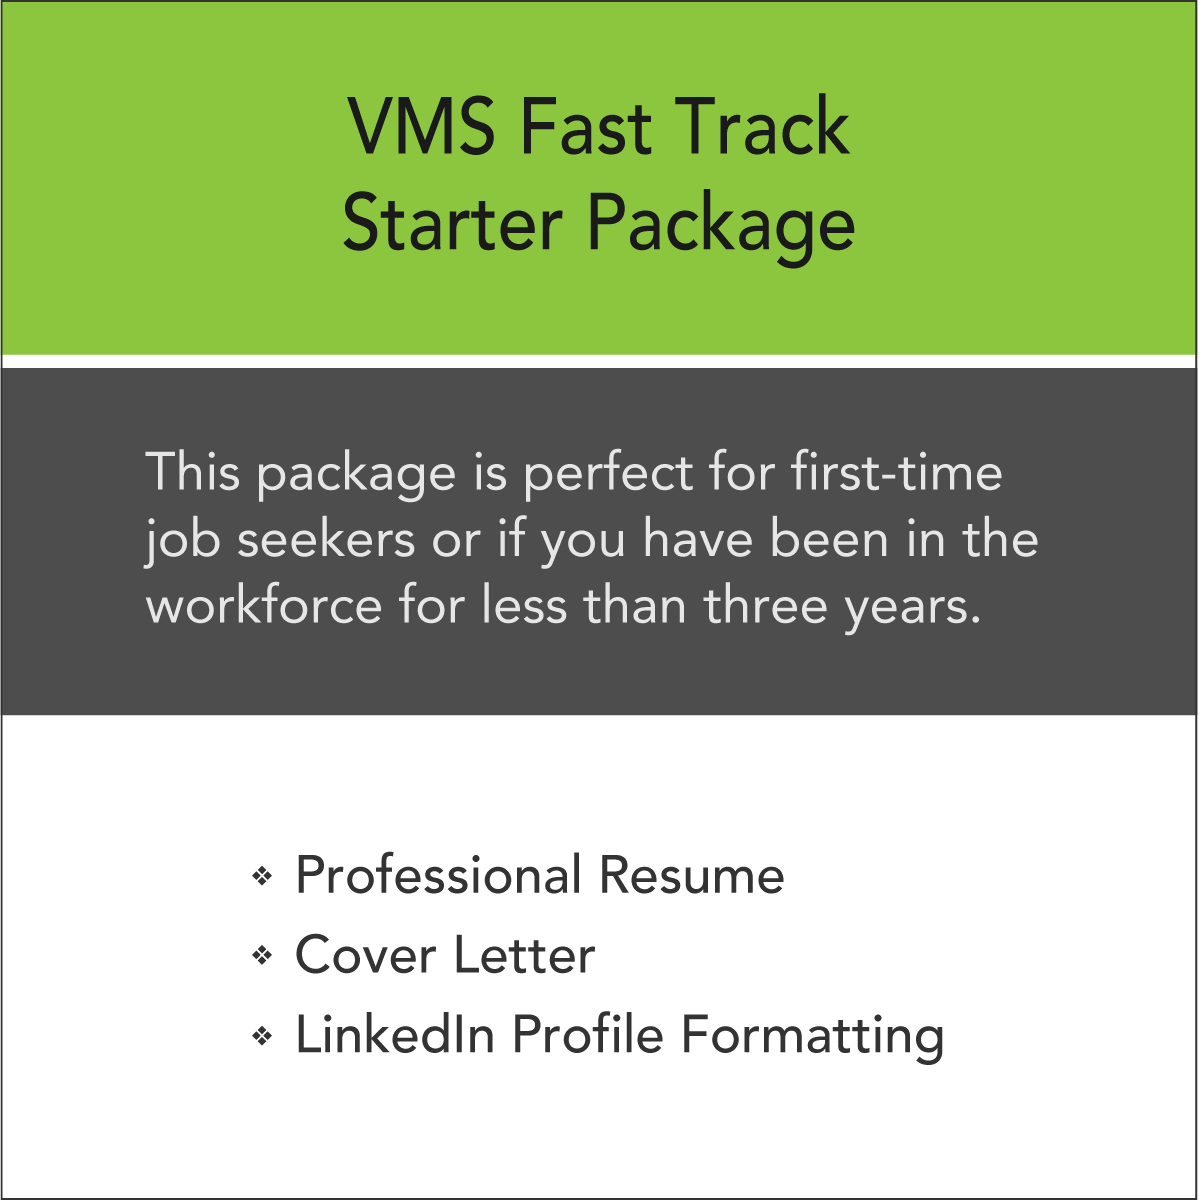 VMS Fast Track Starter Resume Package - Certified Resume Writers